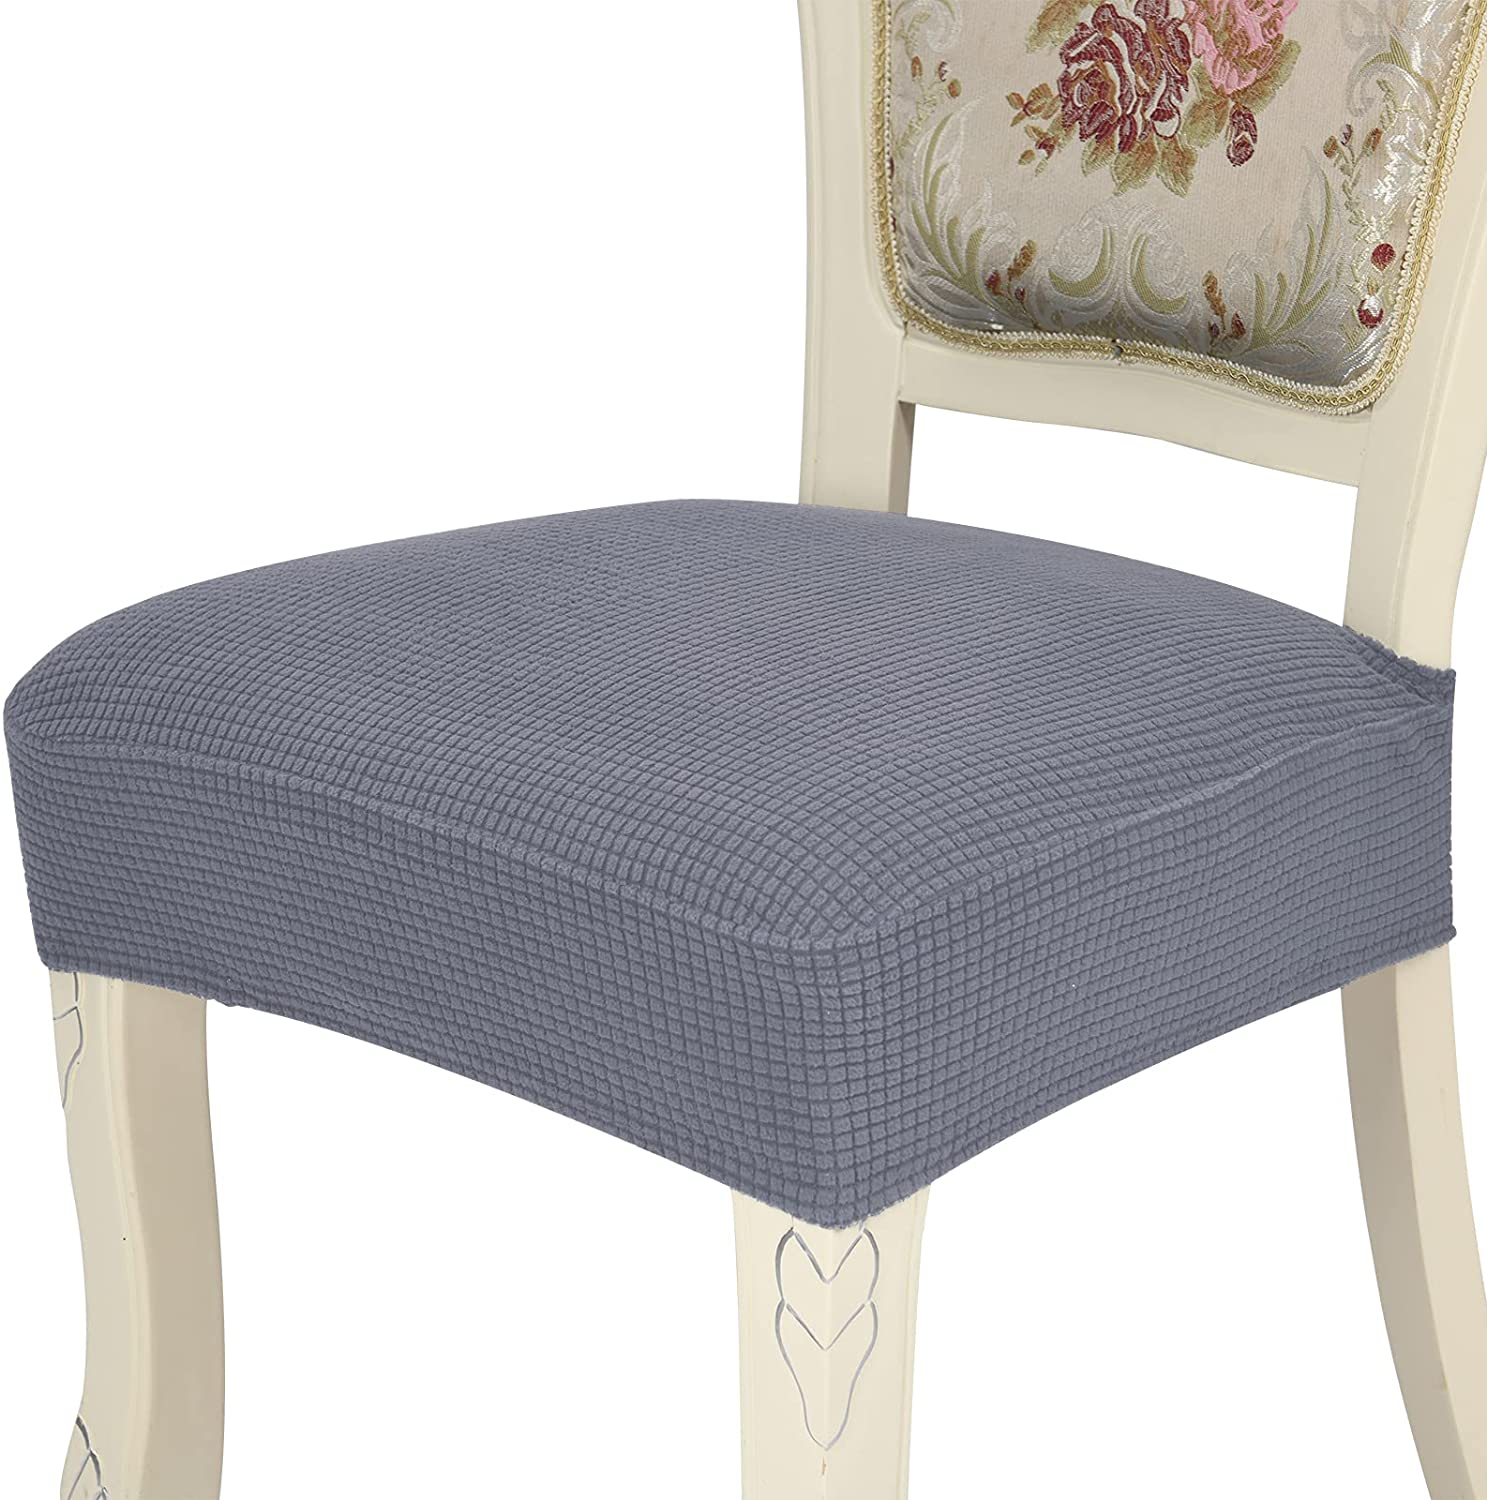 Chair Covers for Dining Special sale item Room Chairs Grey Rear-Cove Set Dark Seattle Mall of 6